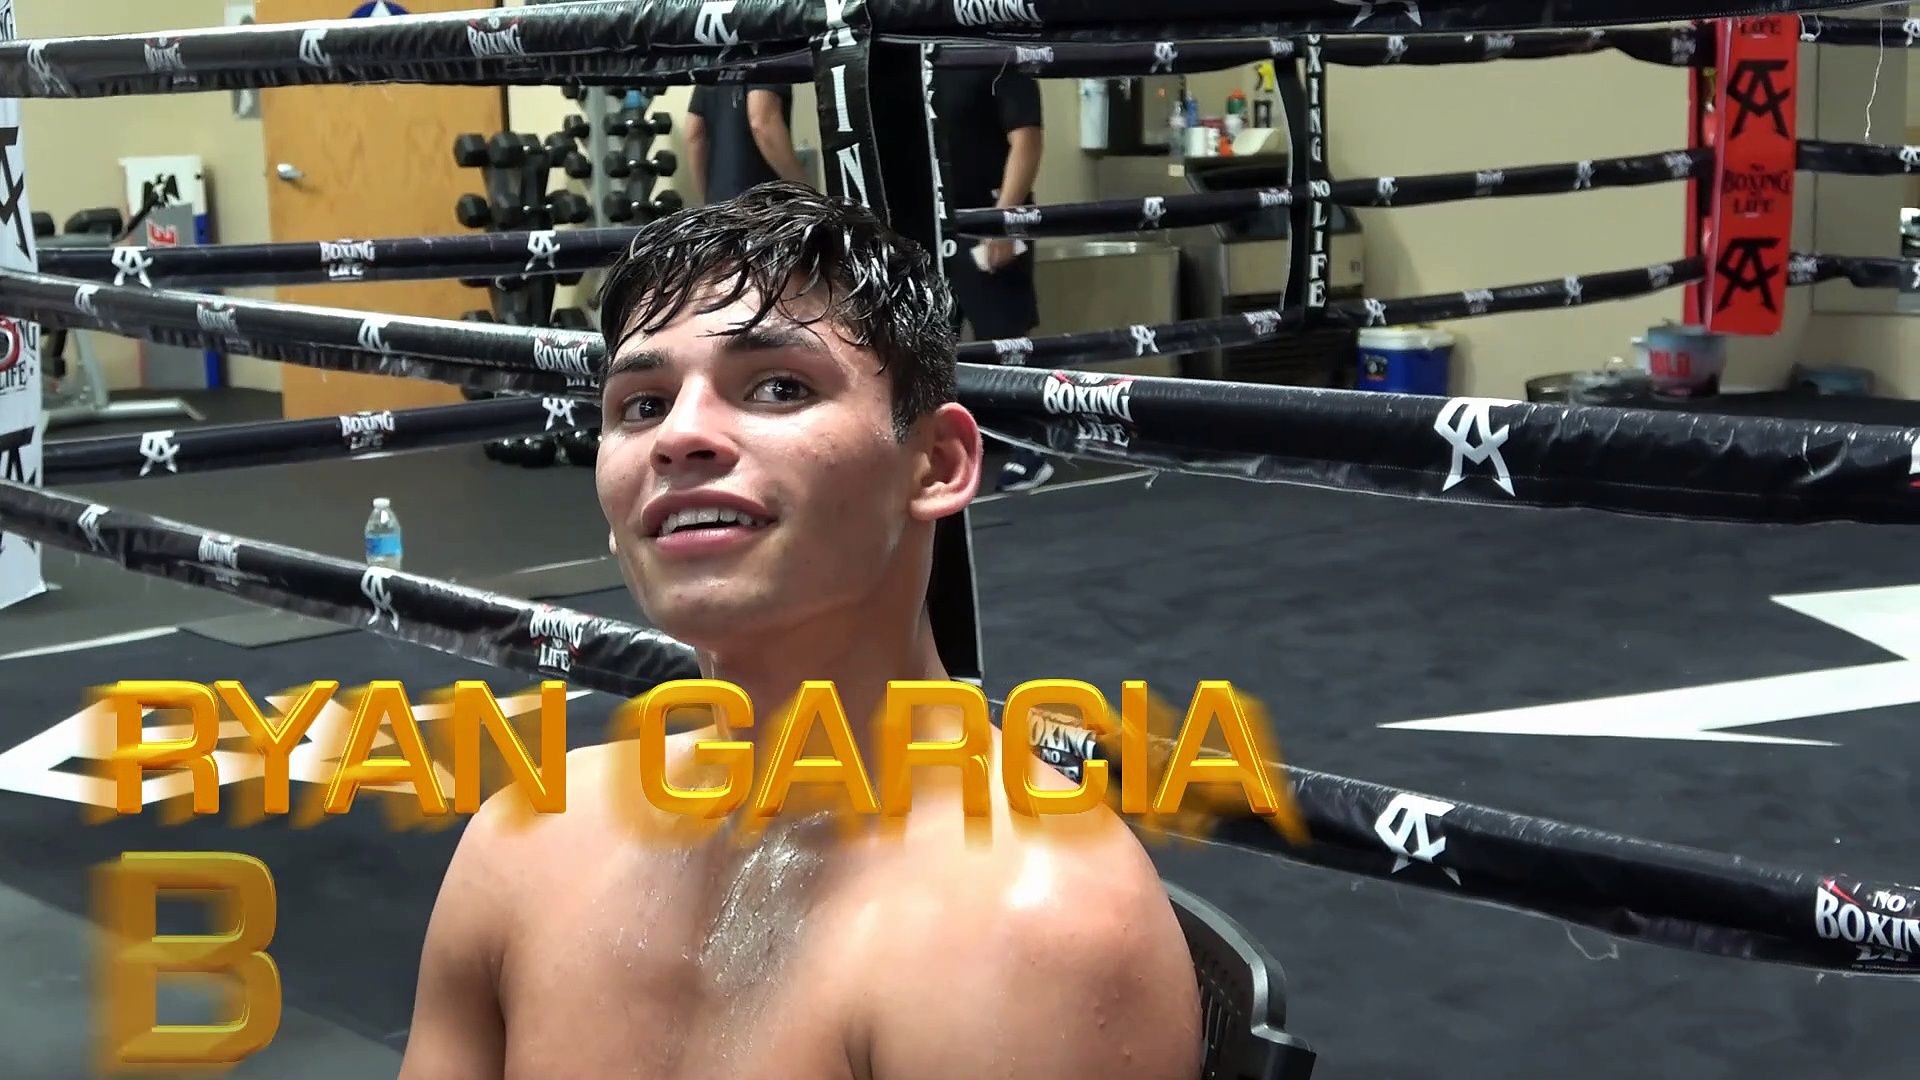 Ryan Garcia pays for tix for a fan who does not have money